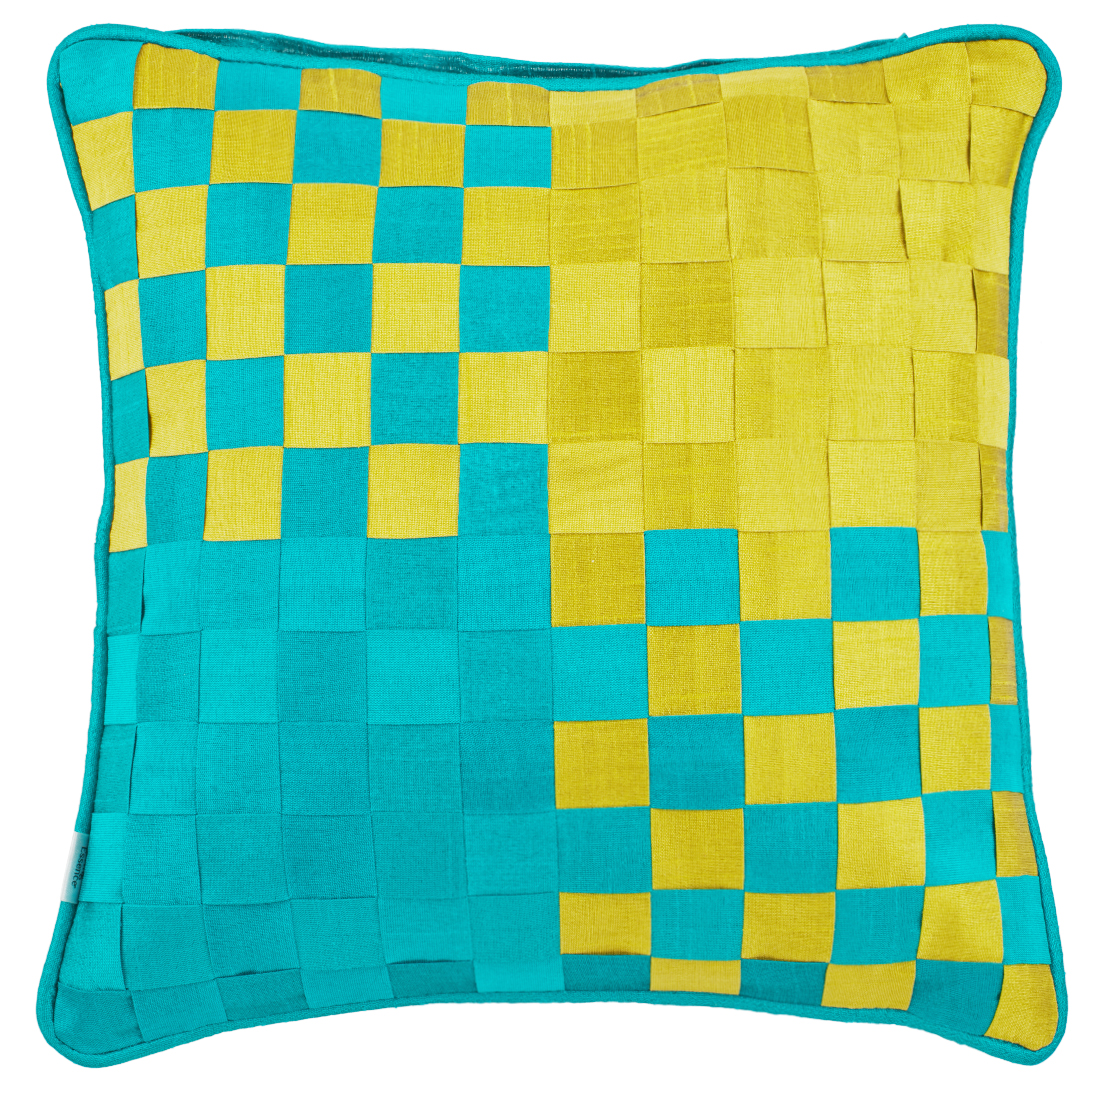 Basket Polyester Cushion Covers in Citron Colour by Living Essence